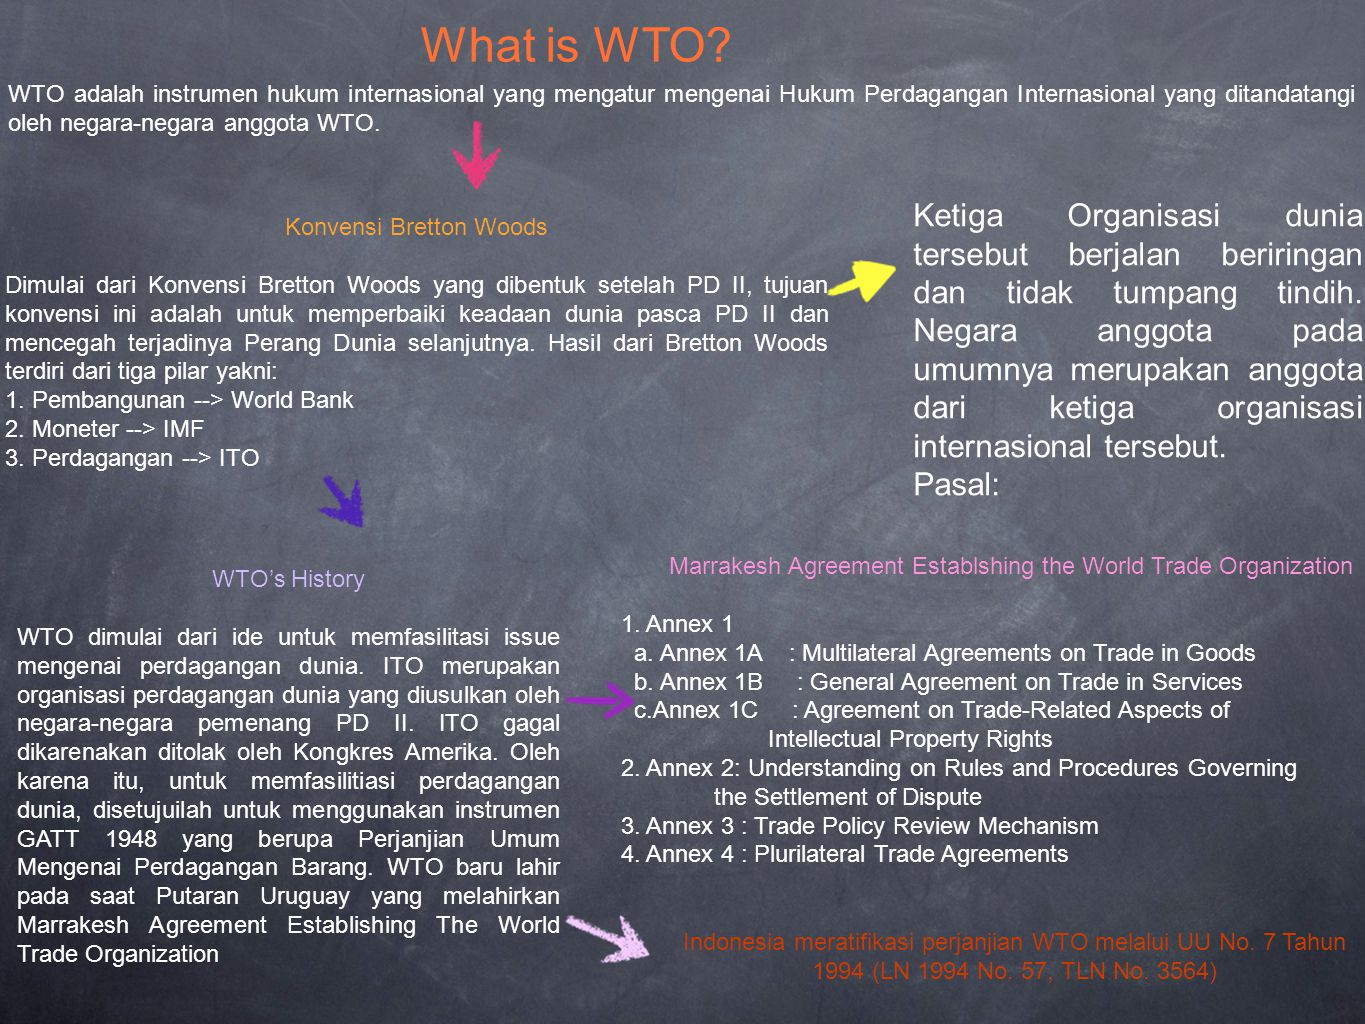 Special Polices Assisting Developing and Transition Economic Specialized help for export promotion The WTO in global economic policy-making Routine notification when members introduce new trade measures or alter old ones Sekertariat WTO memberi pelatihan dan mendampingi teknikal mengenai hal-hal yang didalam organisasi.